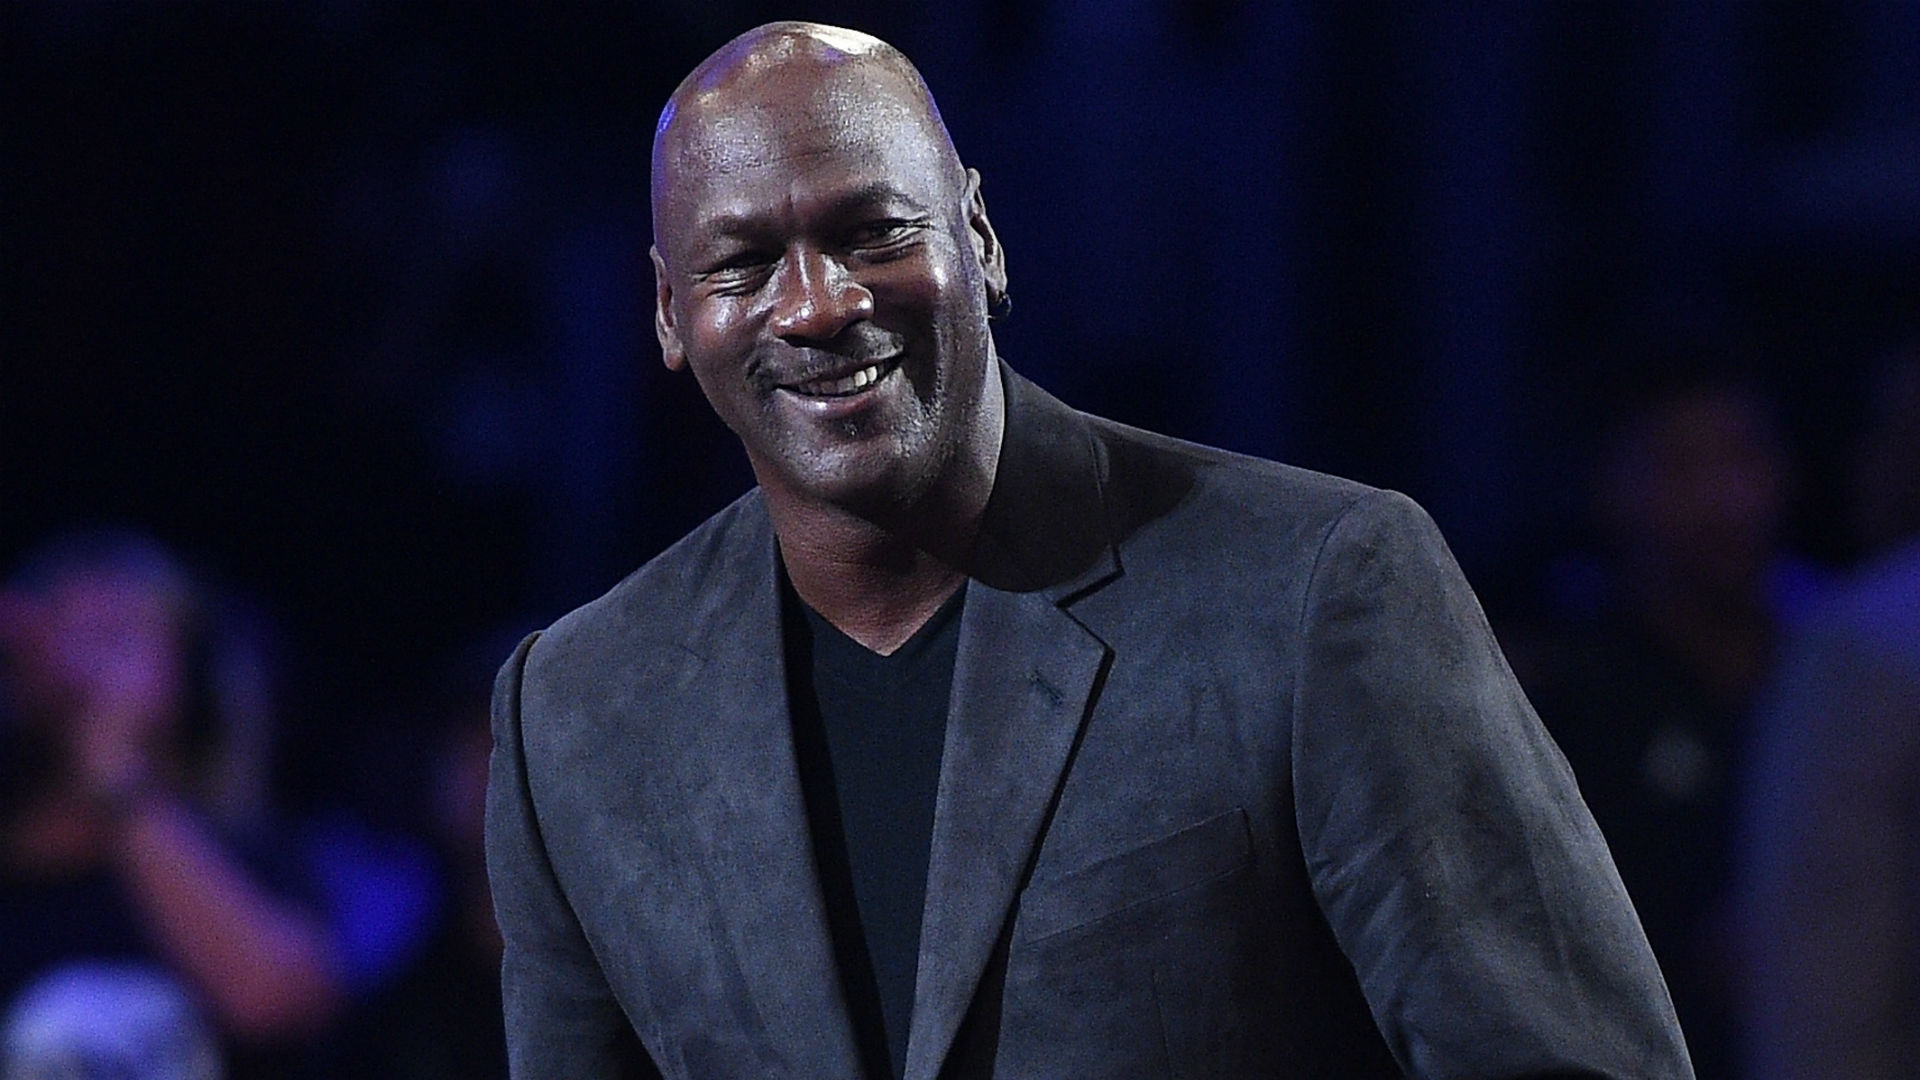 Michael Jordan Reminds Everyone Why He's The GOAT Of Basketball